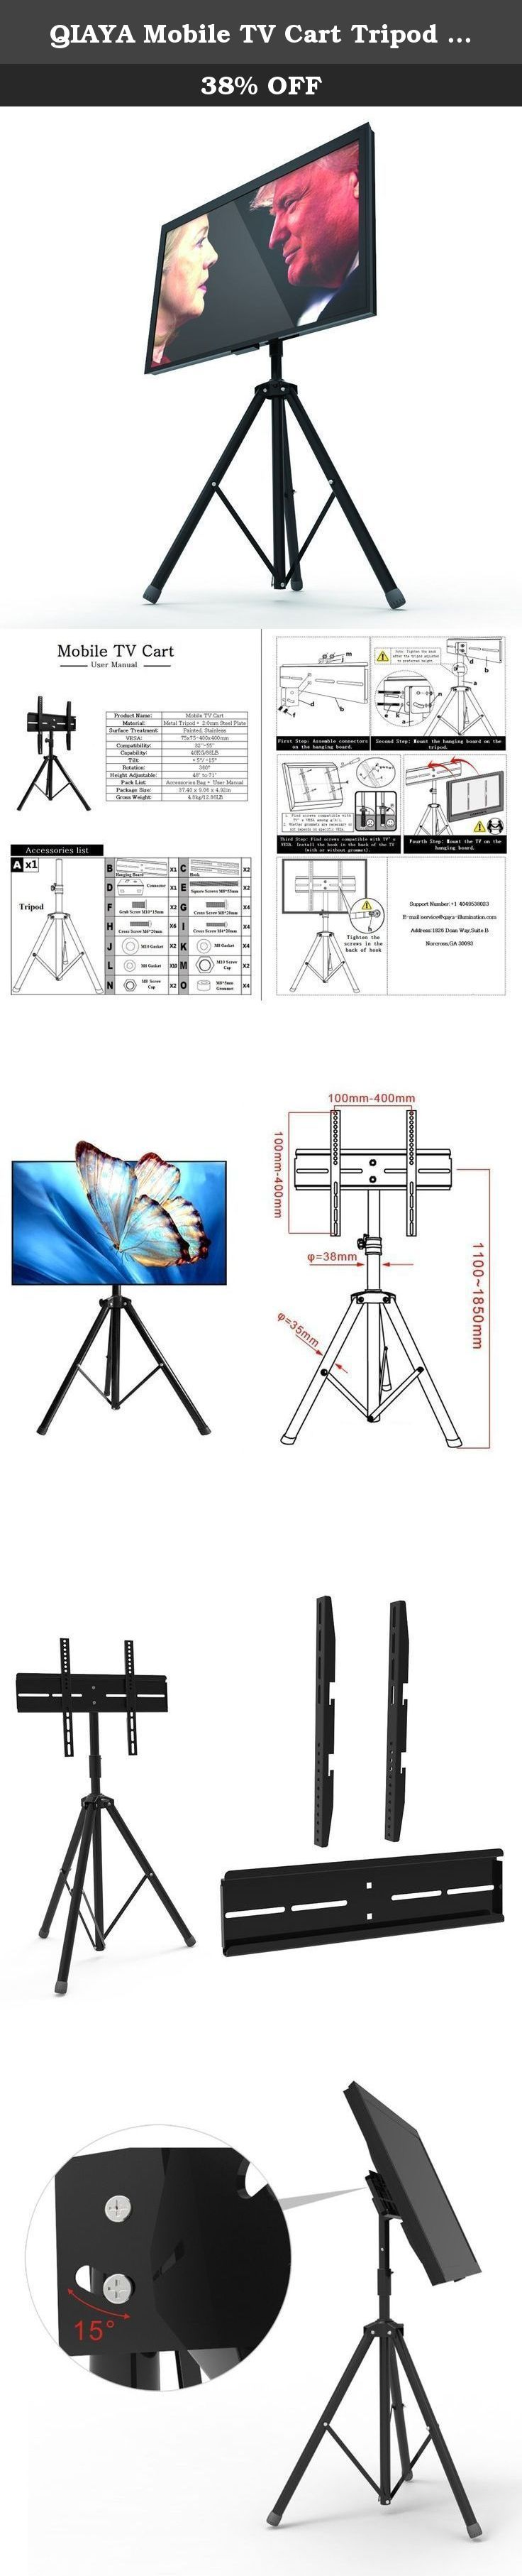 "QIAYA Mobile TV Cart Tripod TV Stand 360 Rotation Portable Universal for 32 to 55 inch Flat Panel Screens LED LCD OLED Plasma. Fit 32-55"" TVs This universal TV Cart/mobile TV Stand with mount fits most 32""-55"" Flat and Curved Panel LED, LCD, and Plasma TVs. VESA size-max 400x400mm. This full motion TV Stand offers complete adjustability Perfect for any angle of viewing. Can tilt 20 degree up and 20 degree down, and swivel right and left for 360 degree. Offer the most complete mobile…"